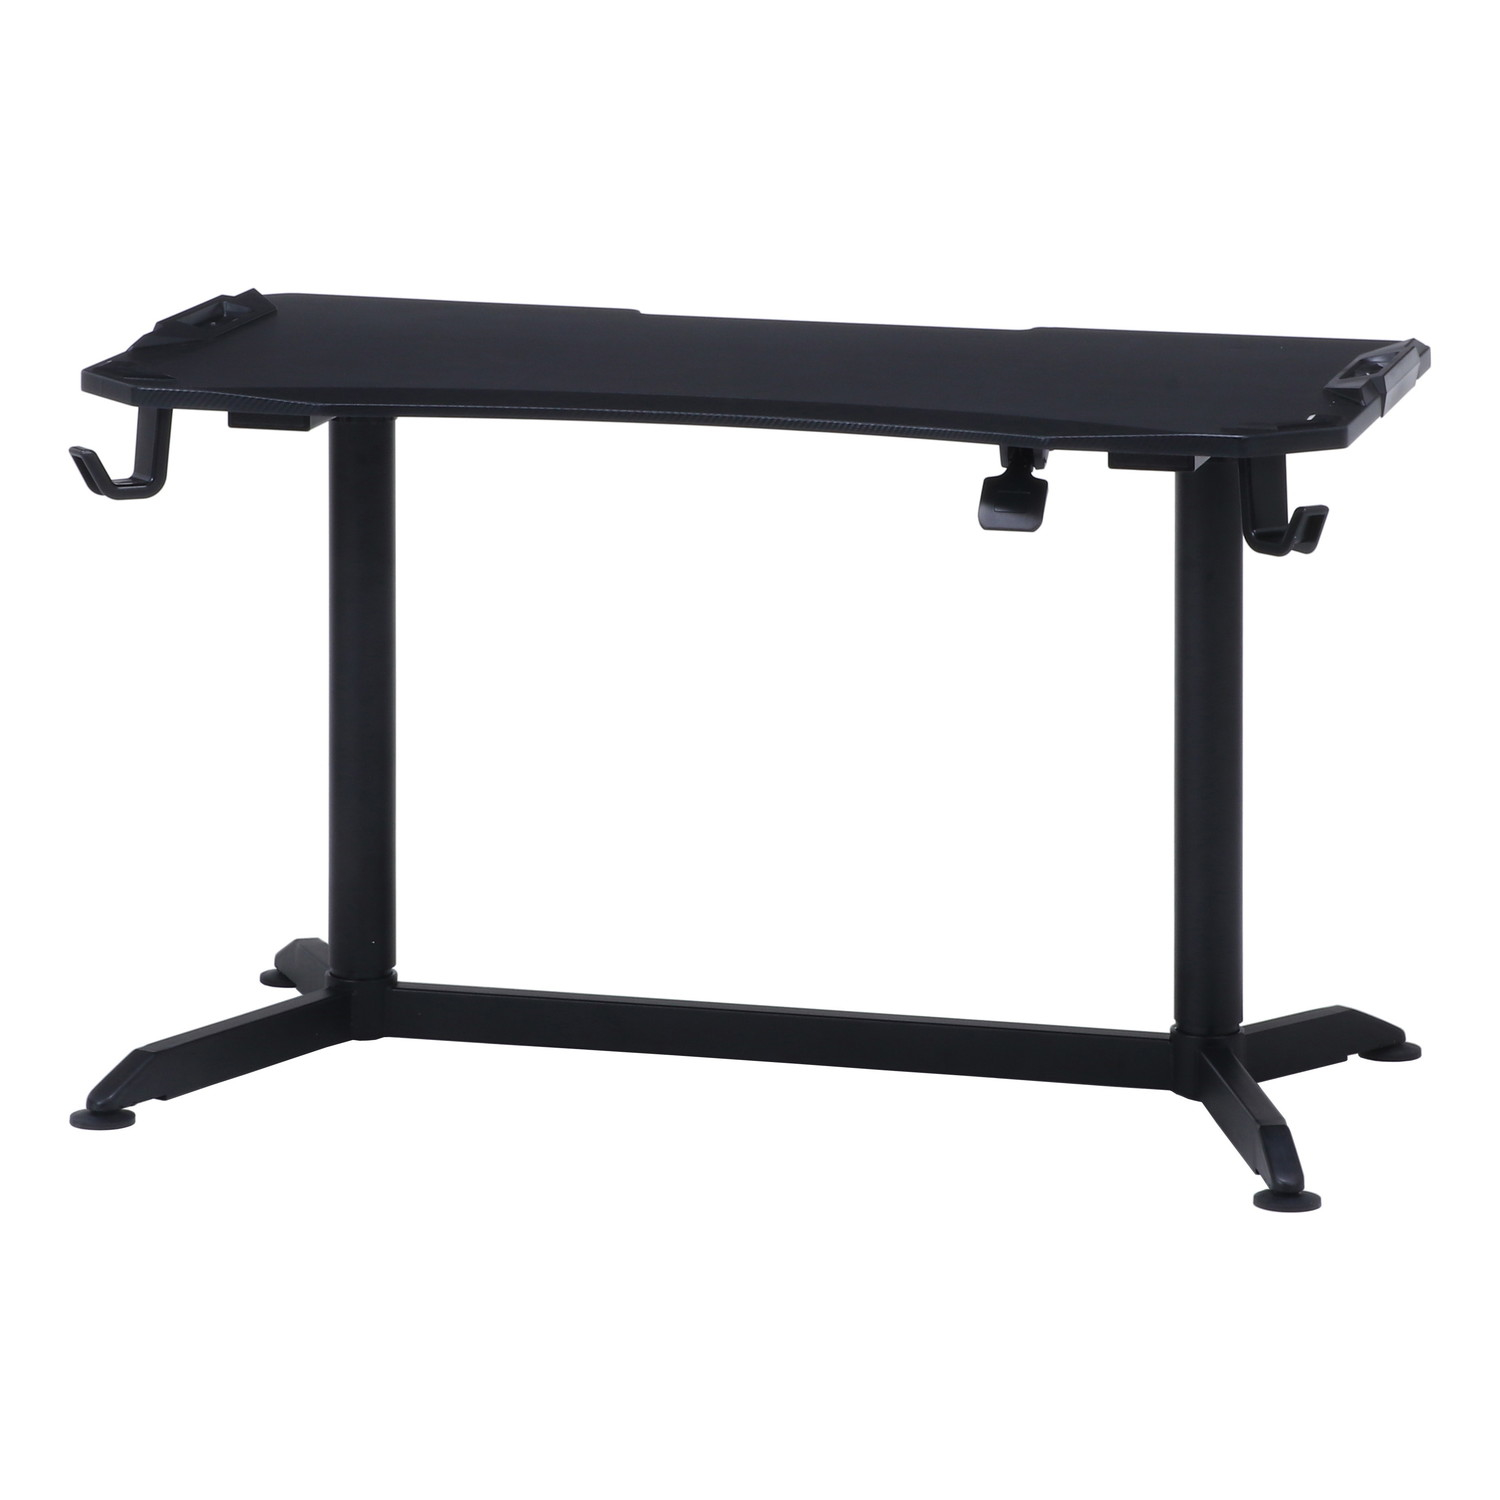 [C/D:38136] GAMING DESK XeNO(ゼノ)PRO-01 FULL BK